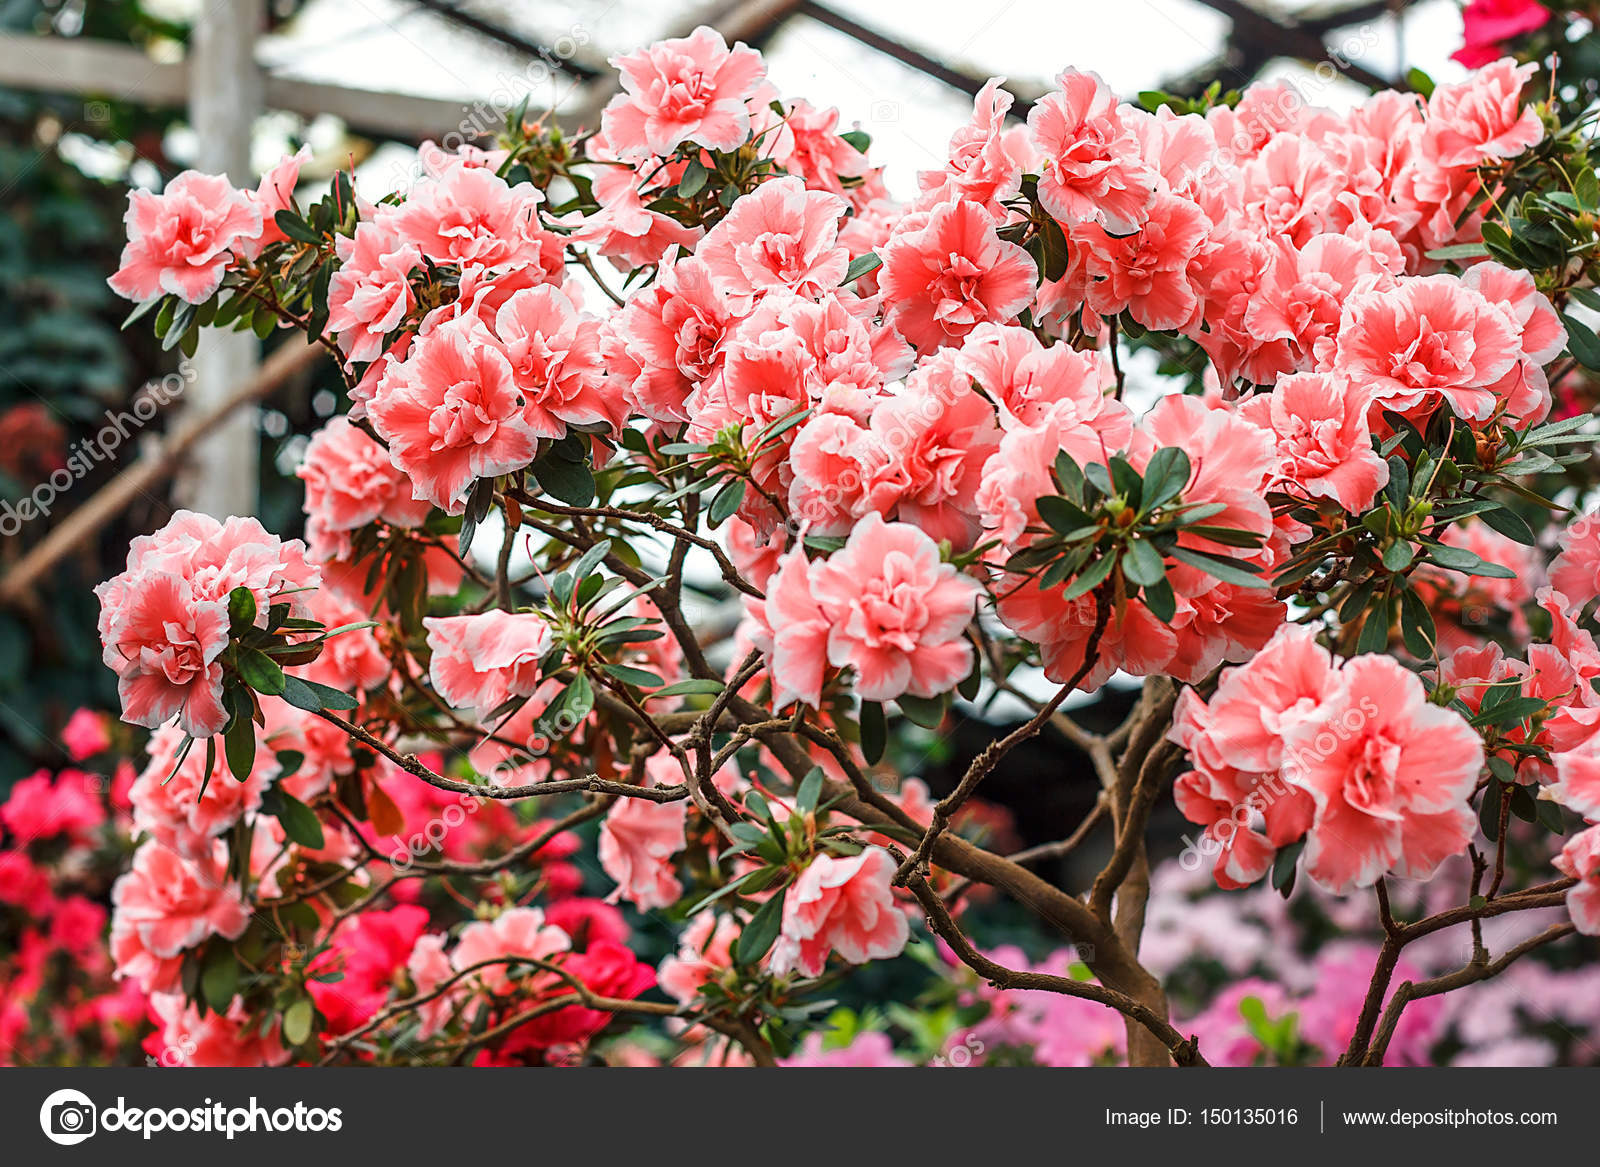 https://st3.depositphotos.com/7043674/15013/i/1600/depositphotos_150135016-stock-photo-beautiful-pink-rhododendron-tree-blossoms.jpg